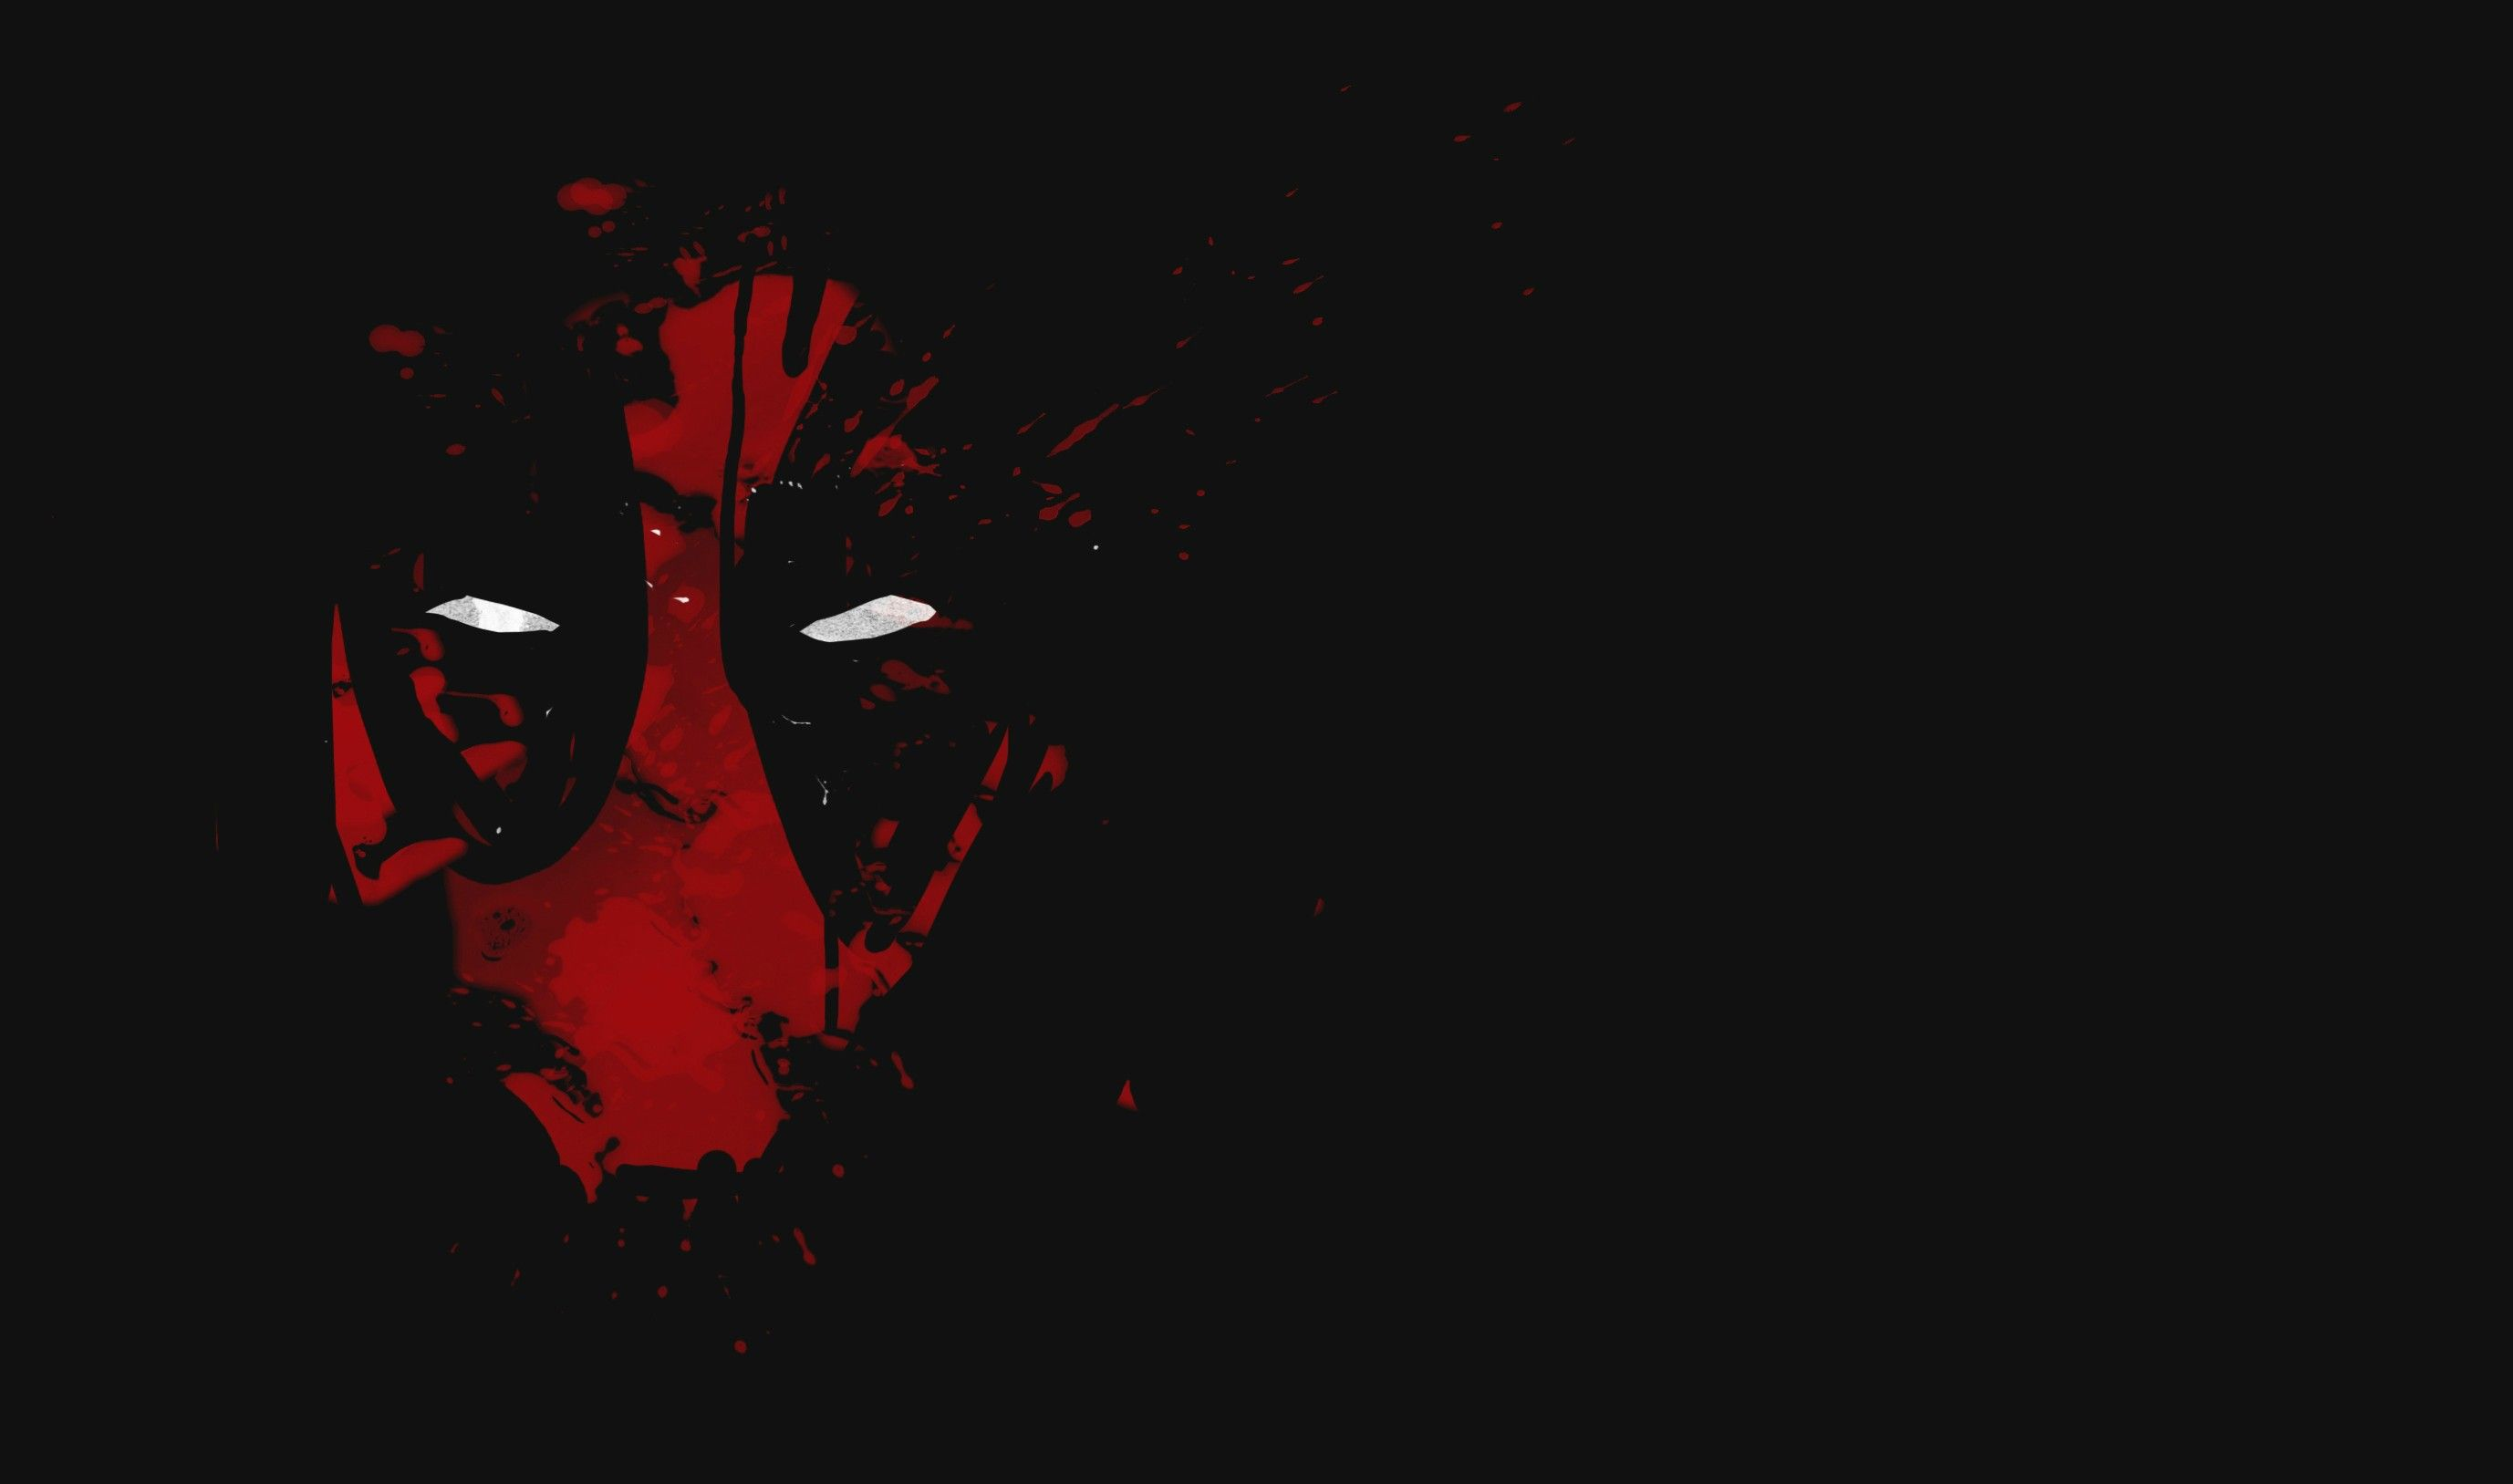 2755x1627 Deadpool Wallpapers | Best Wallpapers